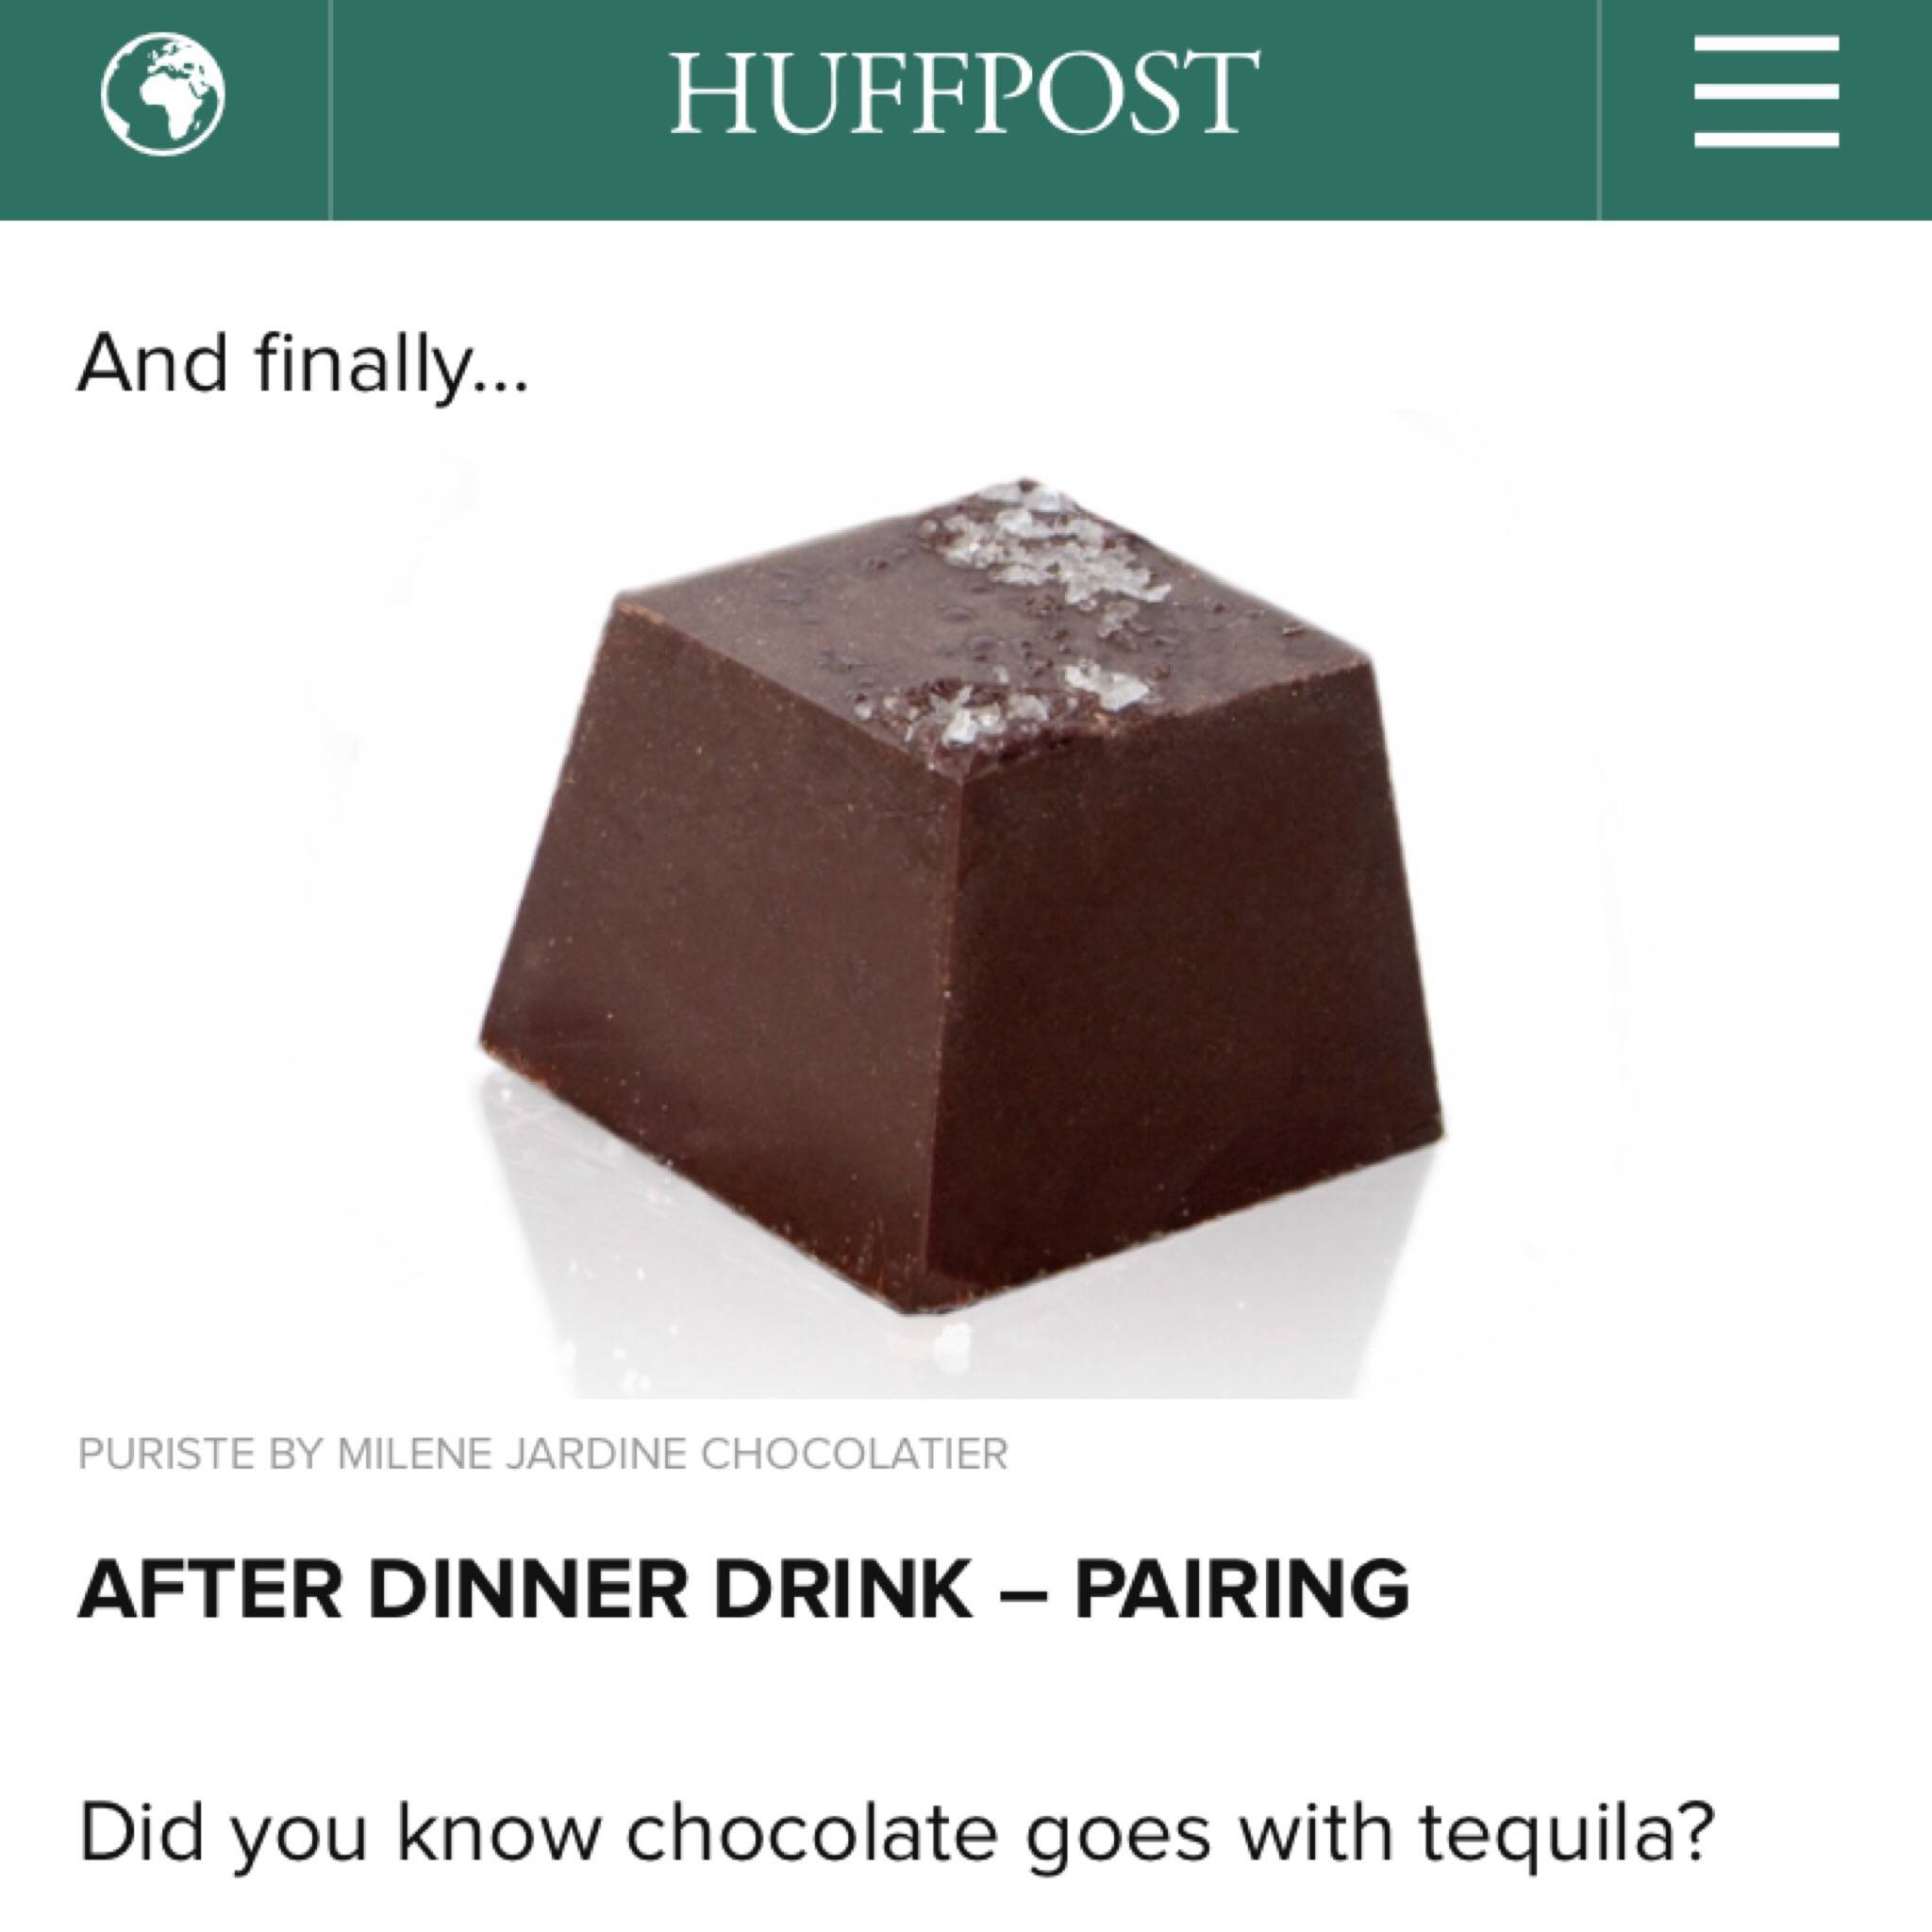 Milène Jardine Chocolatier featured in Huffington Post Valentine's Day 2017 Guide, highlighting exclusive  chocolate and tequila pairing with Blue Hour Tequila.